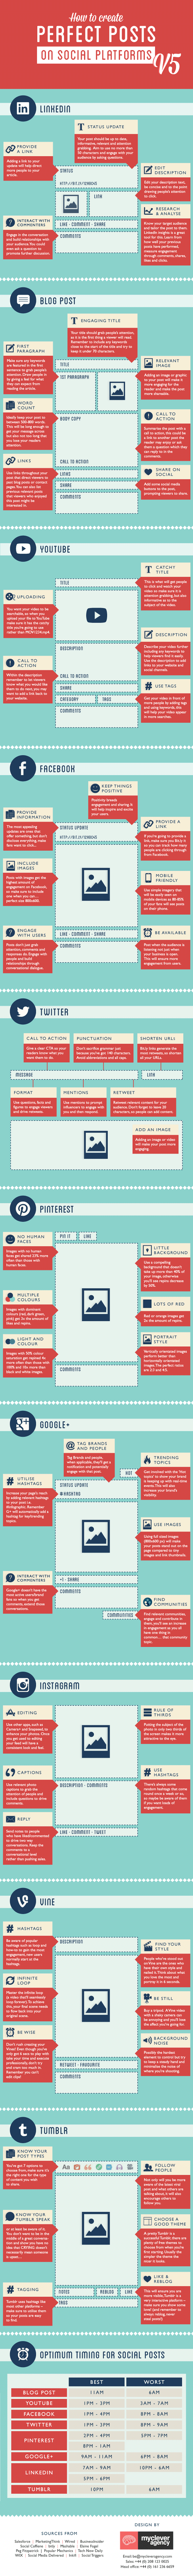 How-to-create-perfect-posts-on-social-media